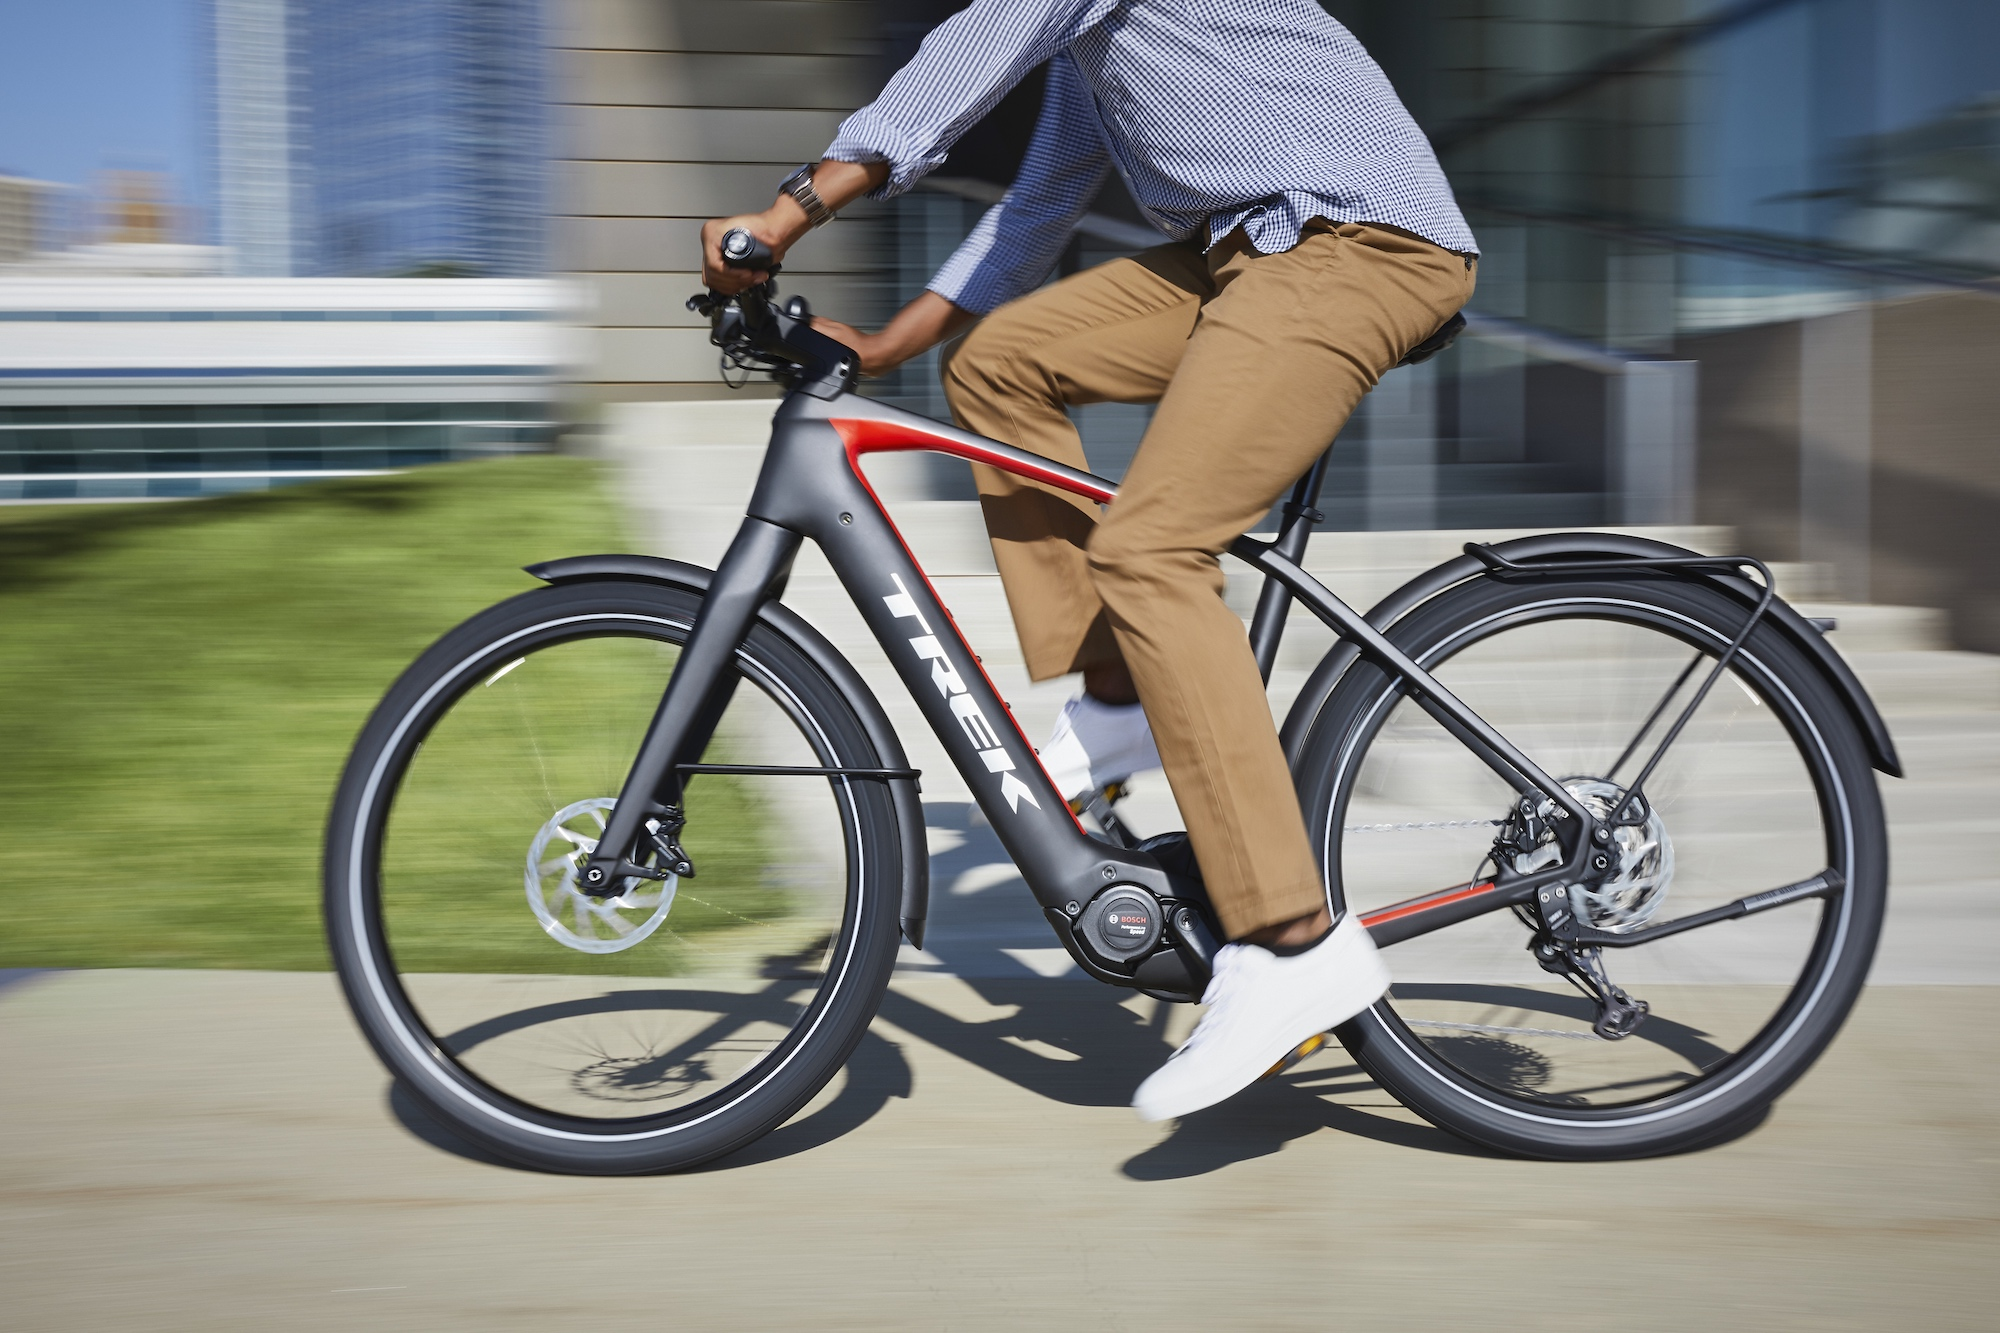 Pedaling With Extra Power A Look At Trek S New Electric